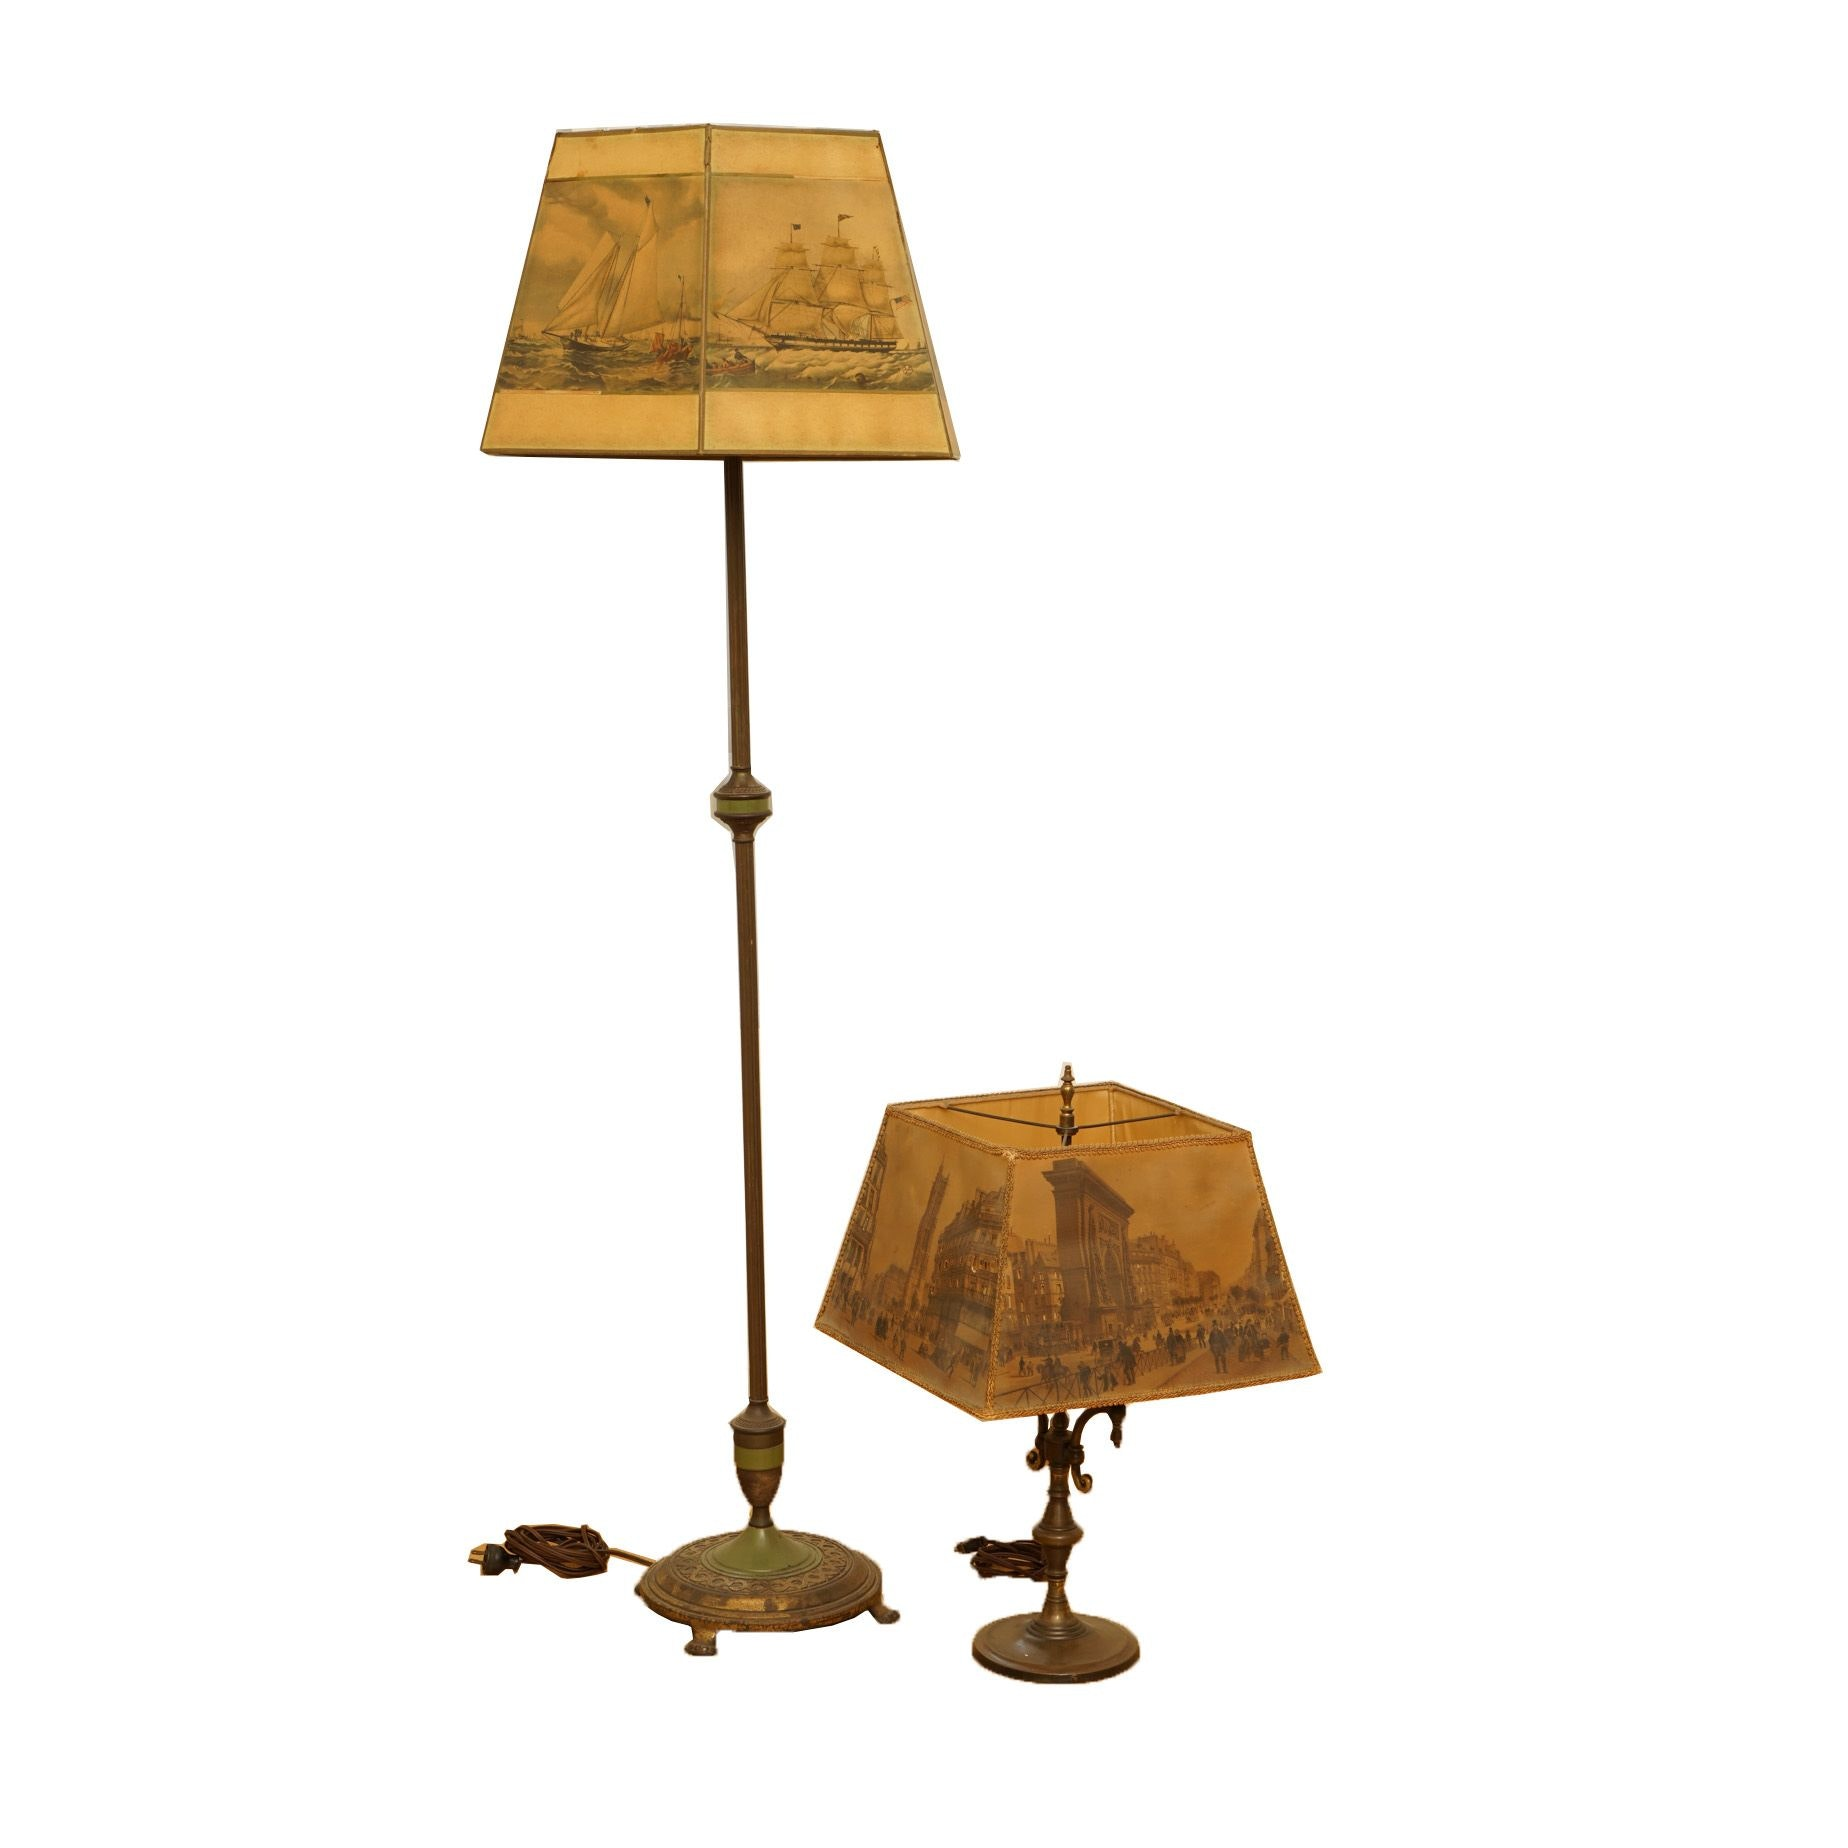 Vintage or Antique Brass Lamps with Historical Scene Shades